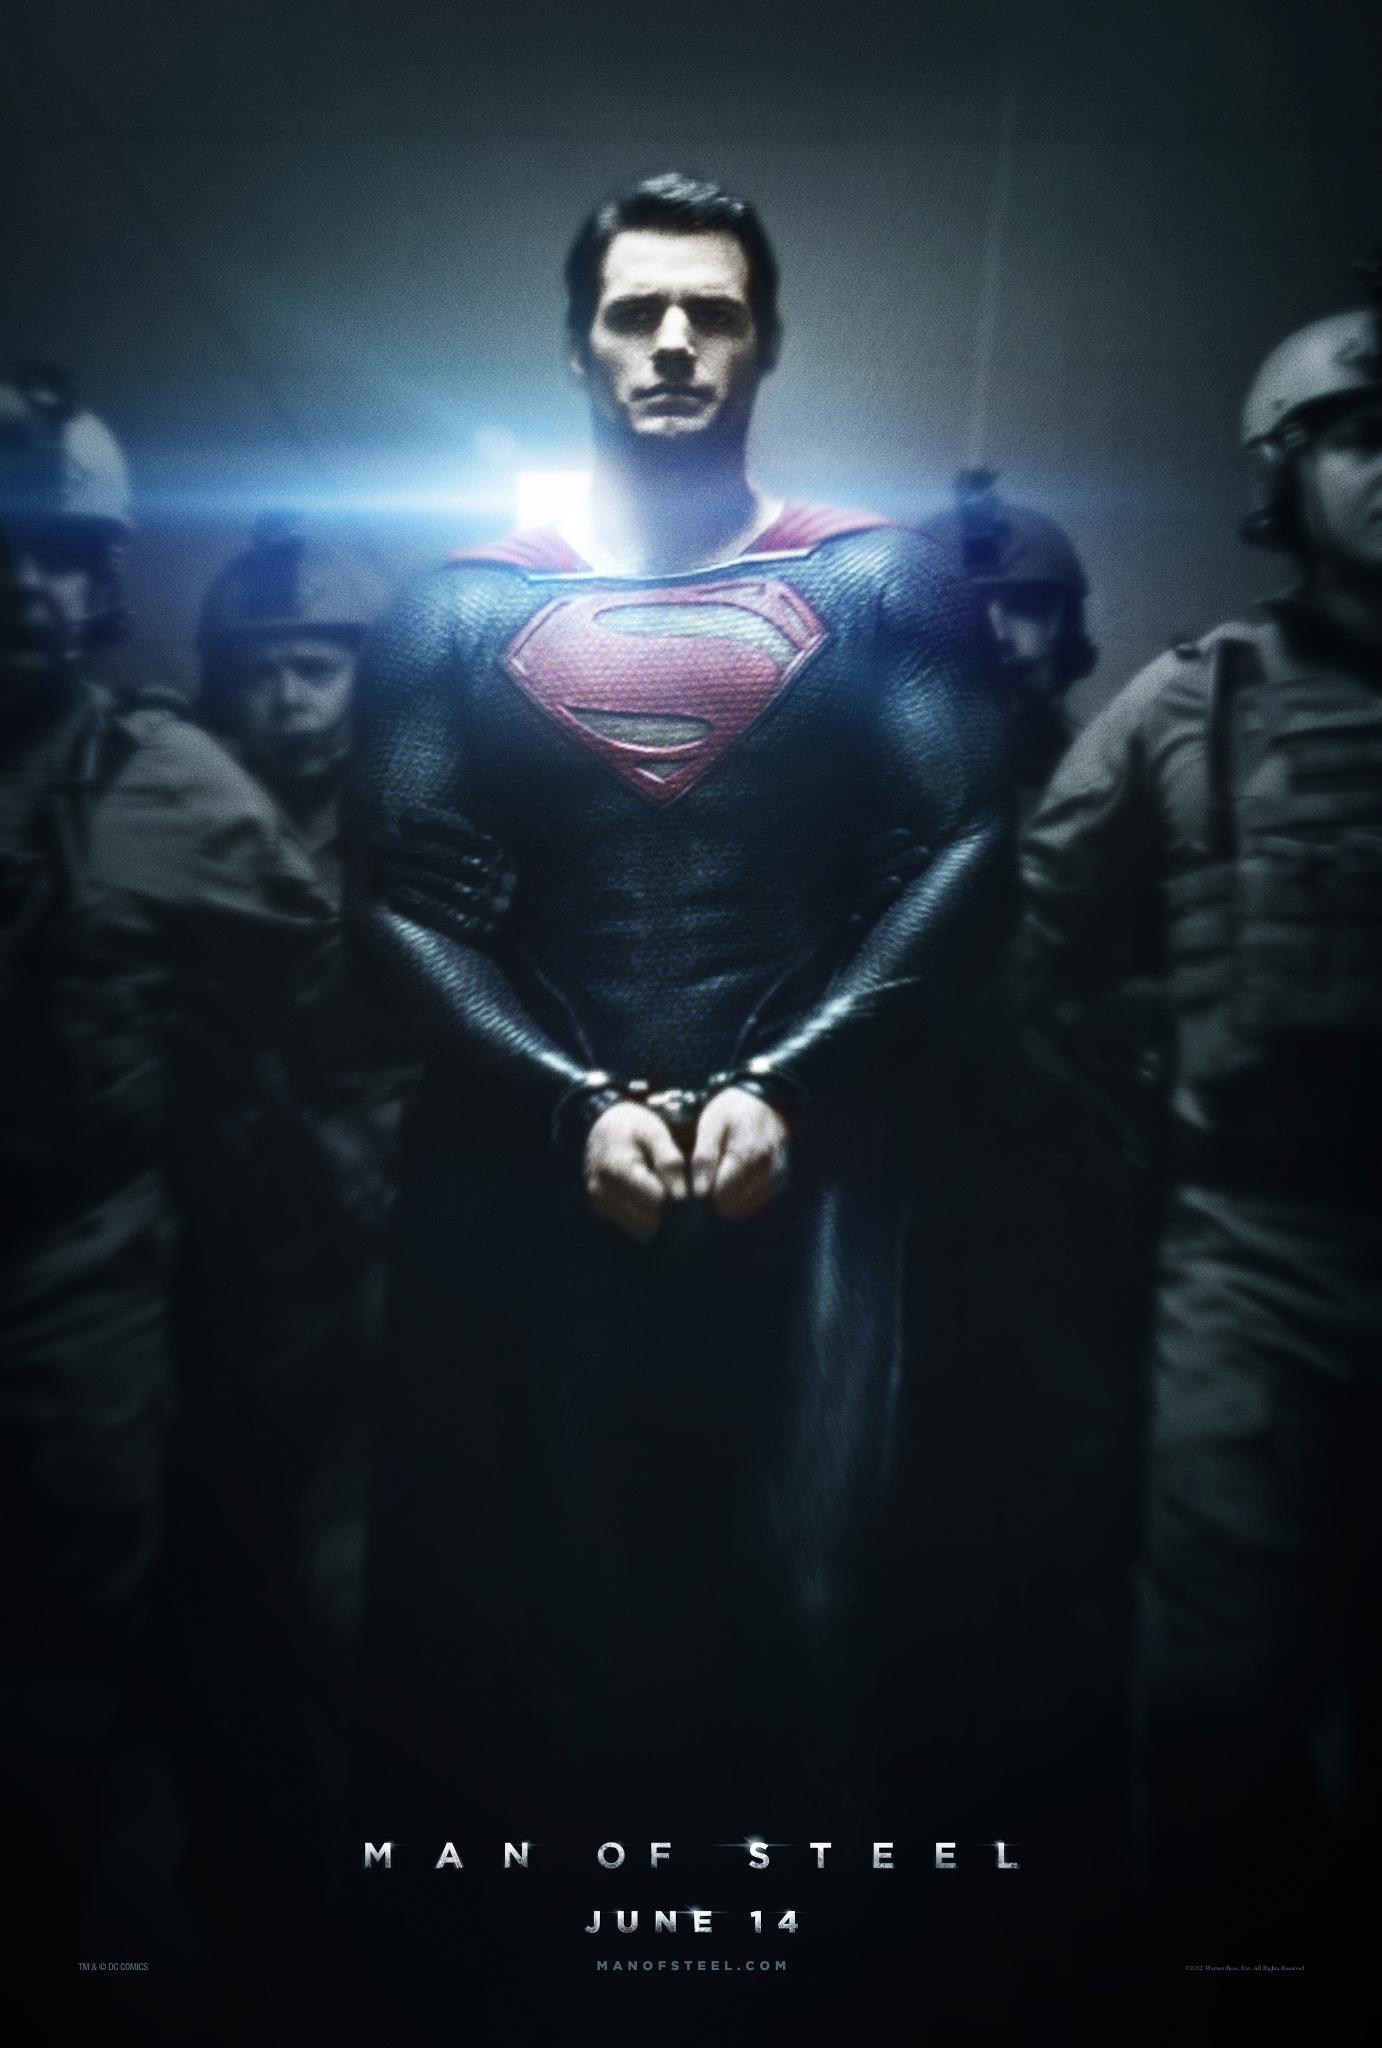 Man of Steel - Movie Poster #5 (Original)